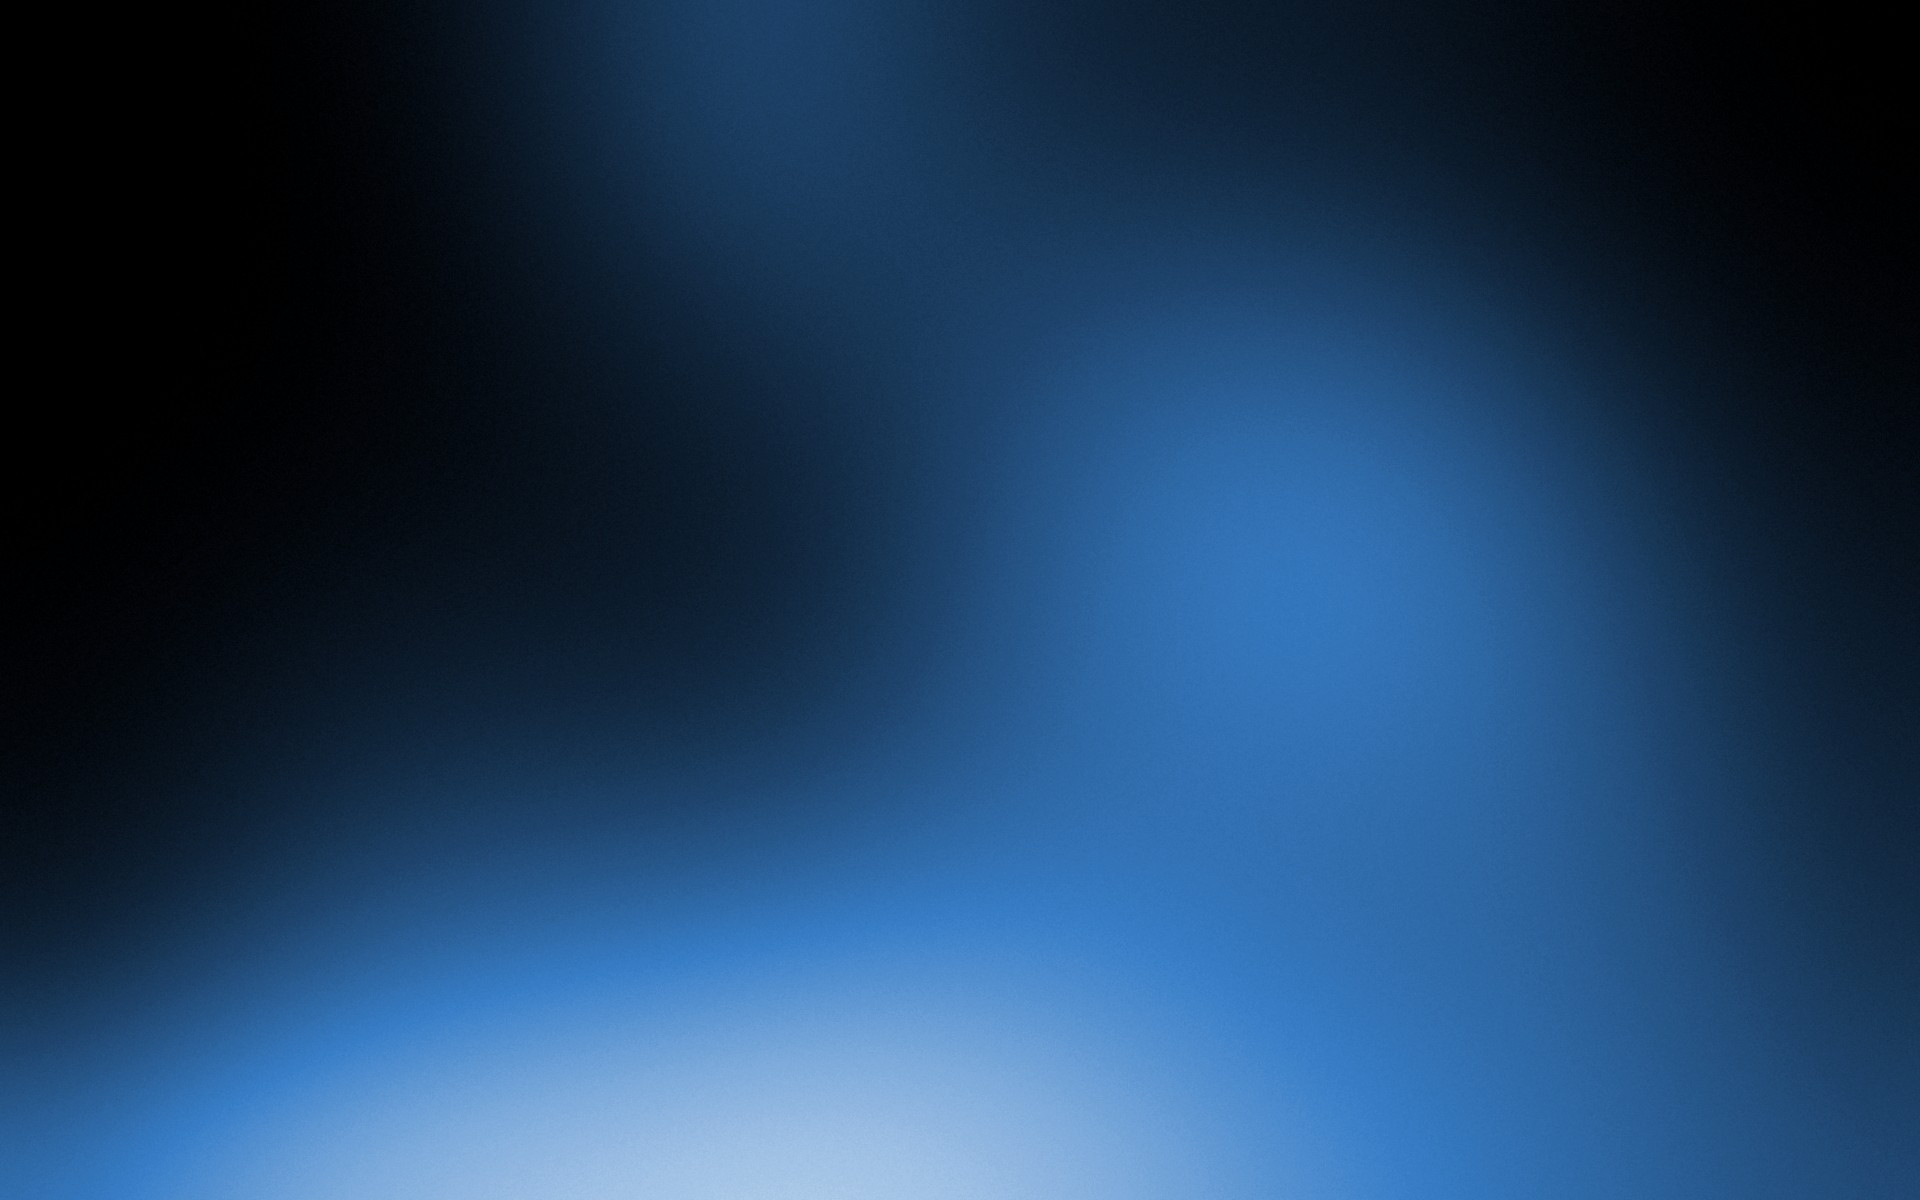 Blue Wallpaper Store Blue gradient wallpaper 1920x1200